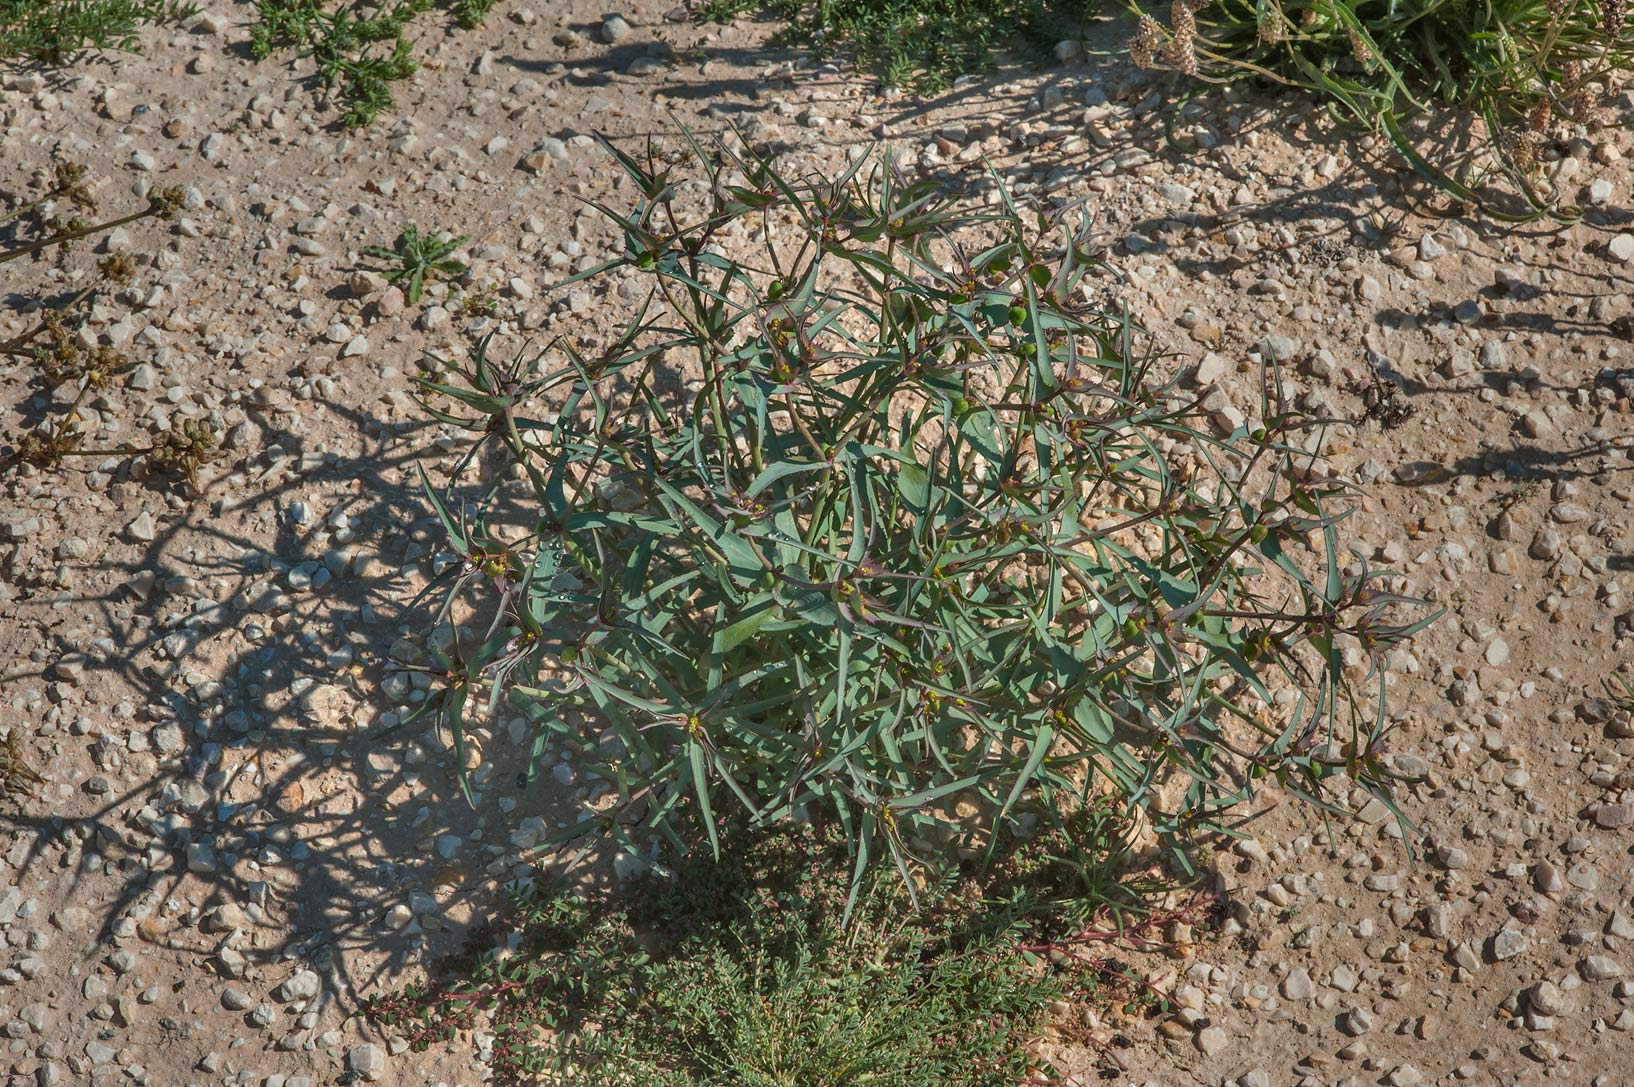 Rare spurge Euphorbia retusa in a large roadside...near Route 77 to Ras Laffan. Qatar